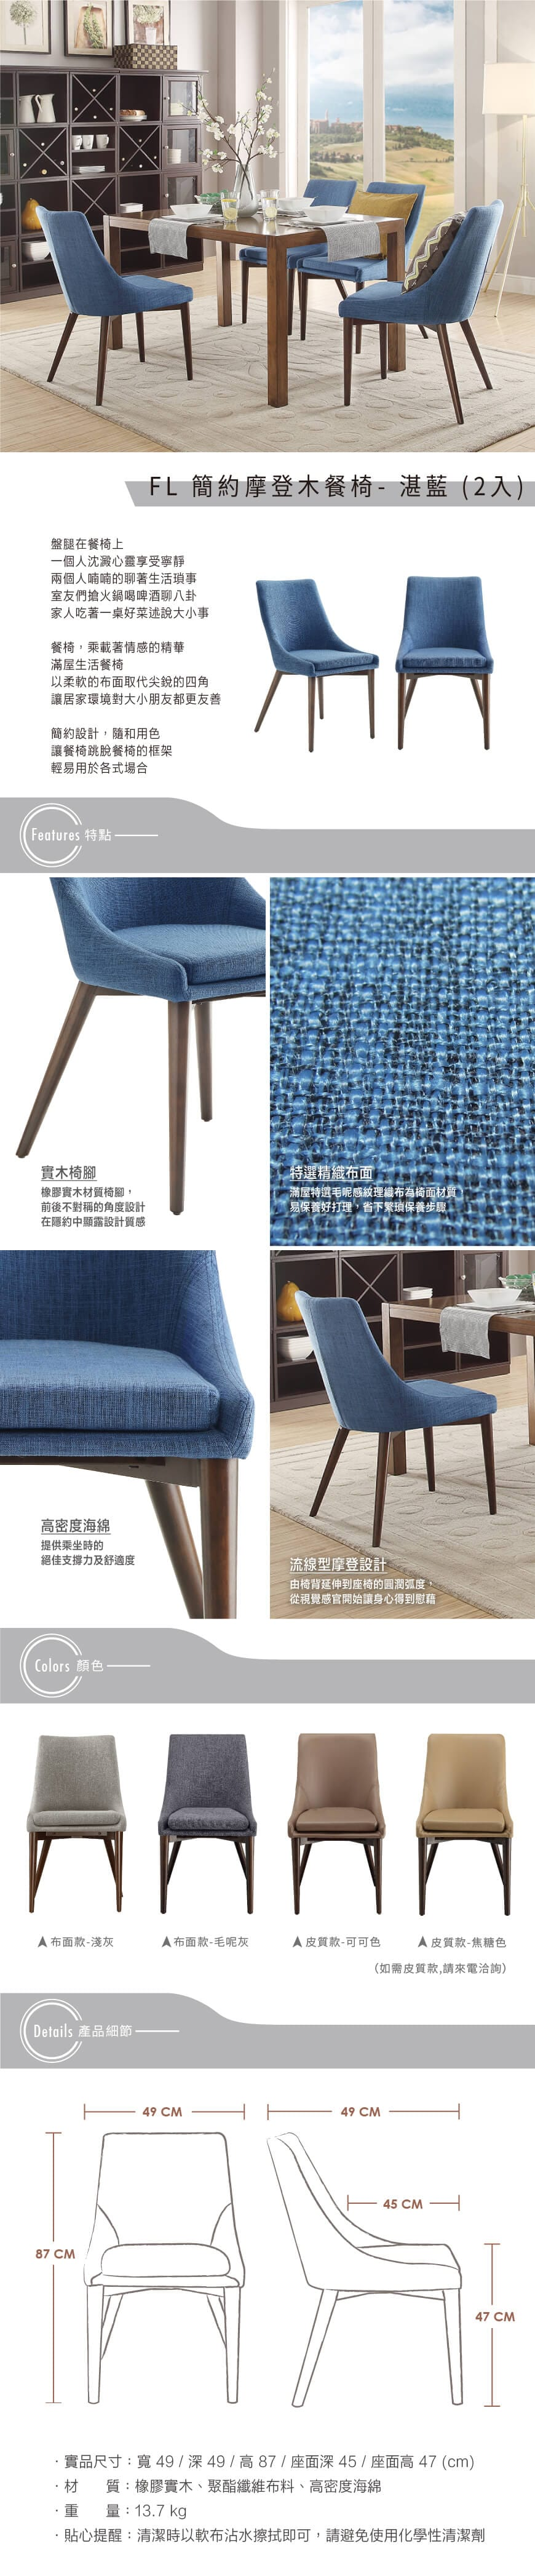 20161215-blue-chair.jpg